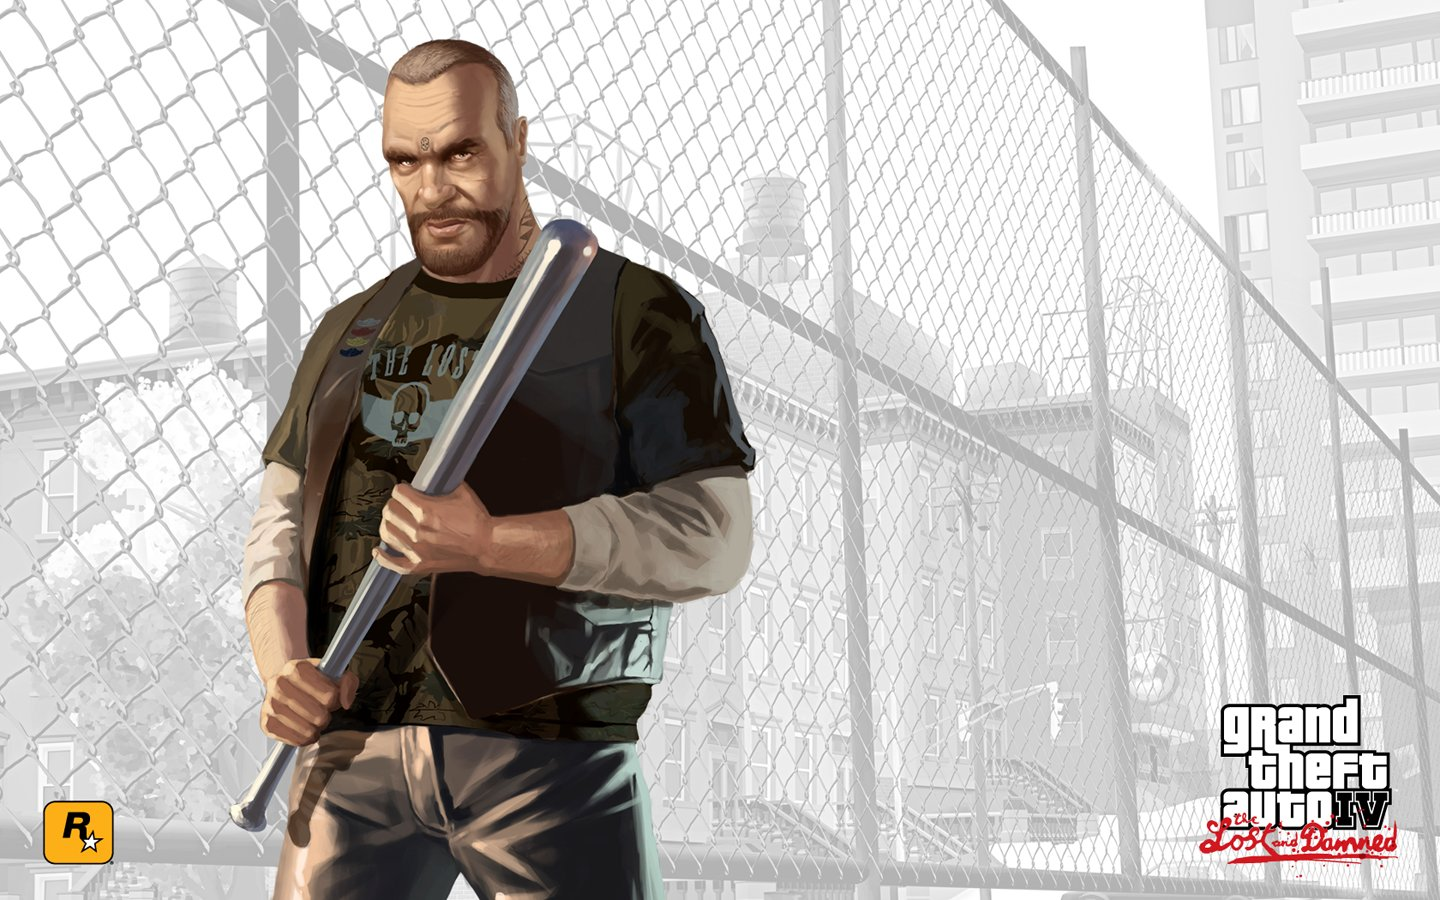 Piece of information loss and cursed GTA 18141